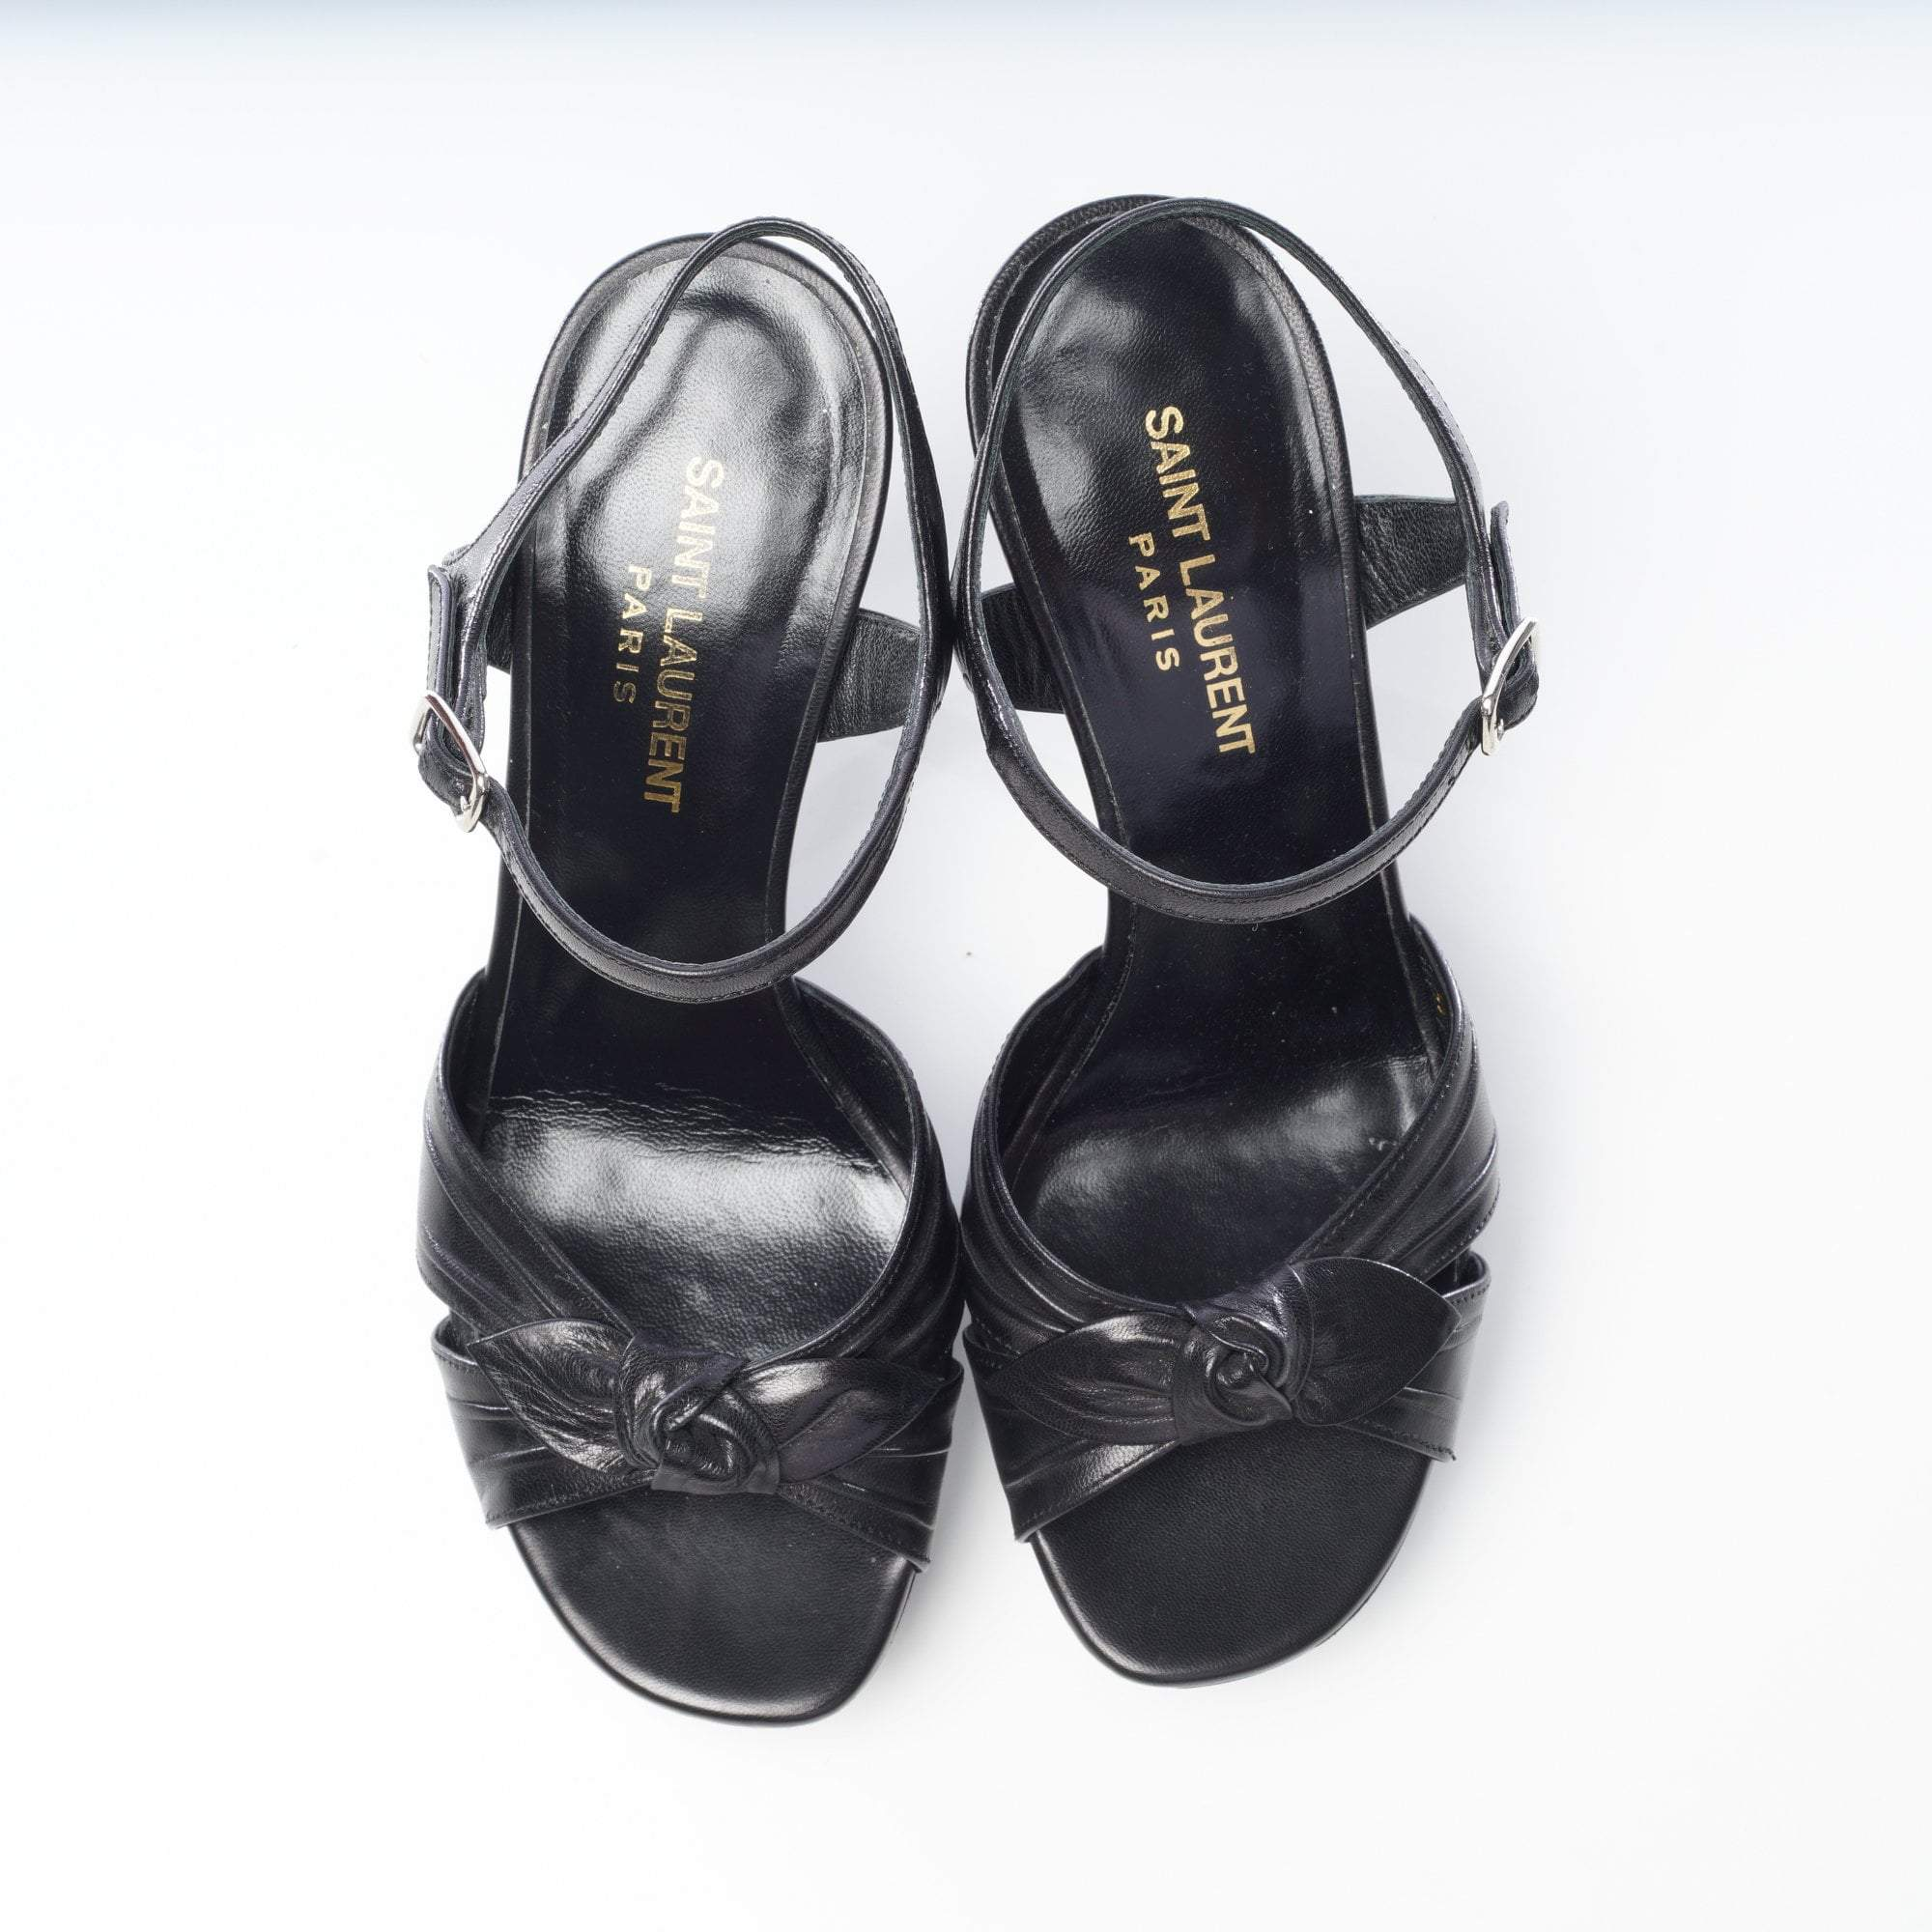 Saint Laurent Black Leather Sandal Heels